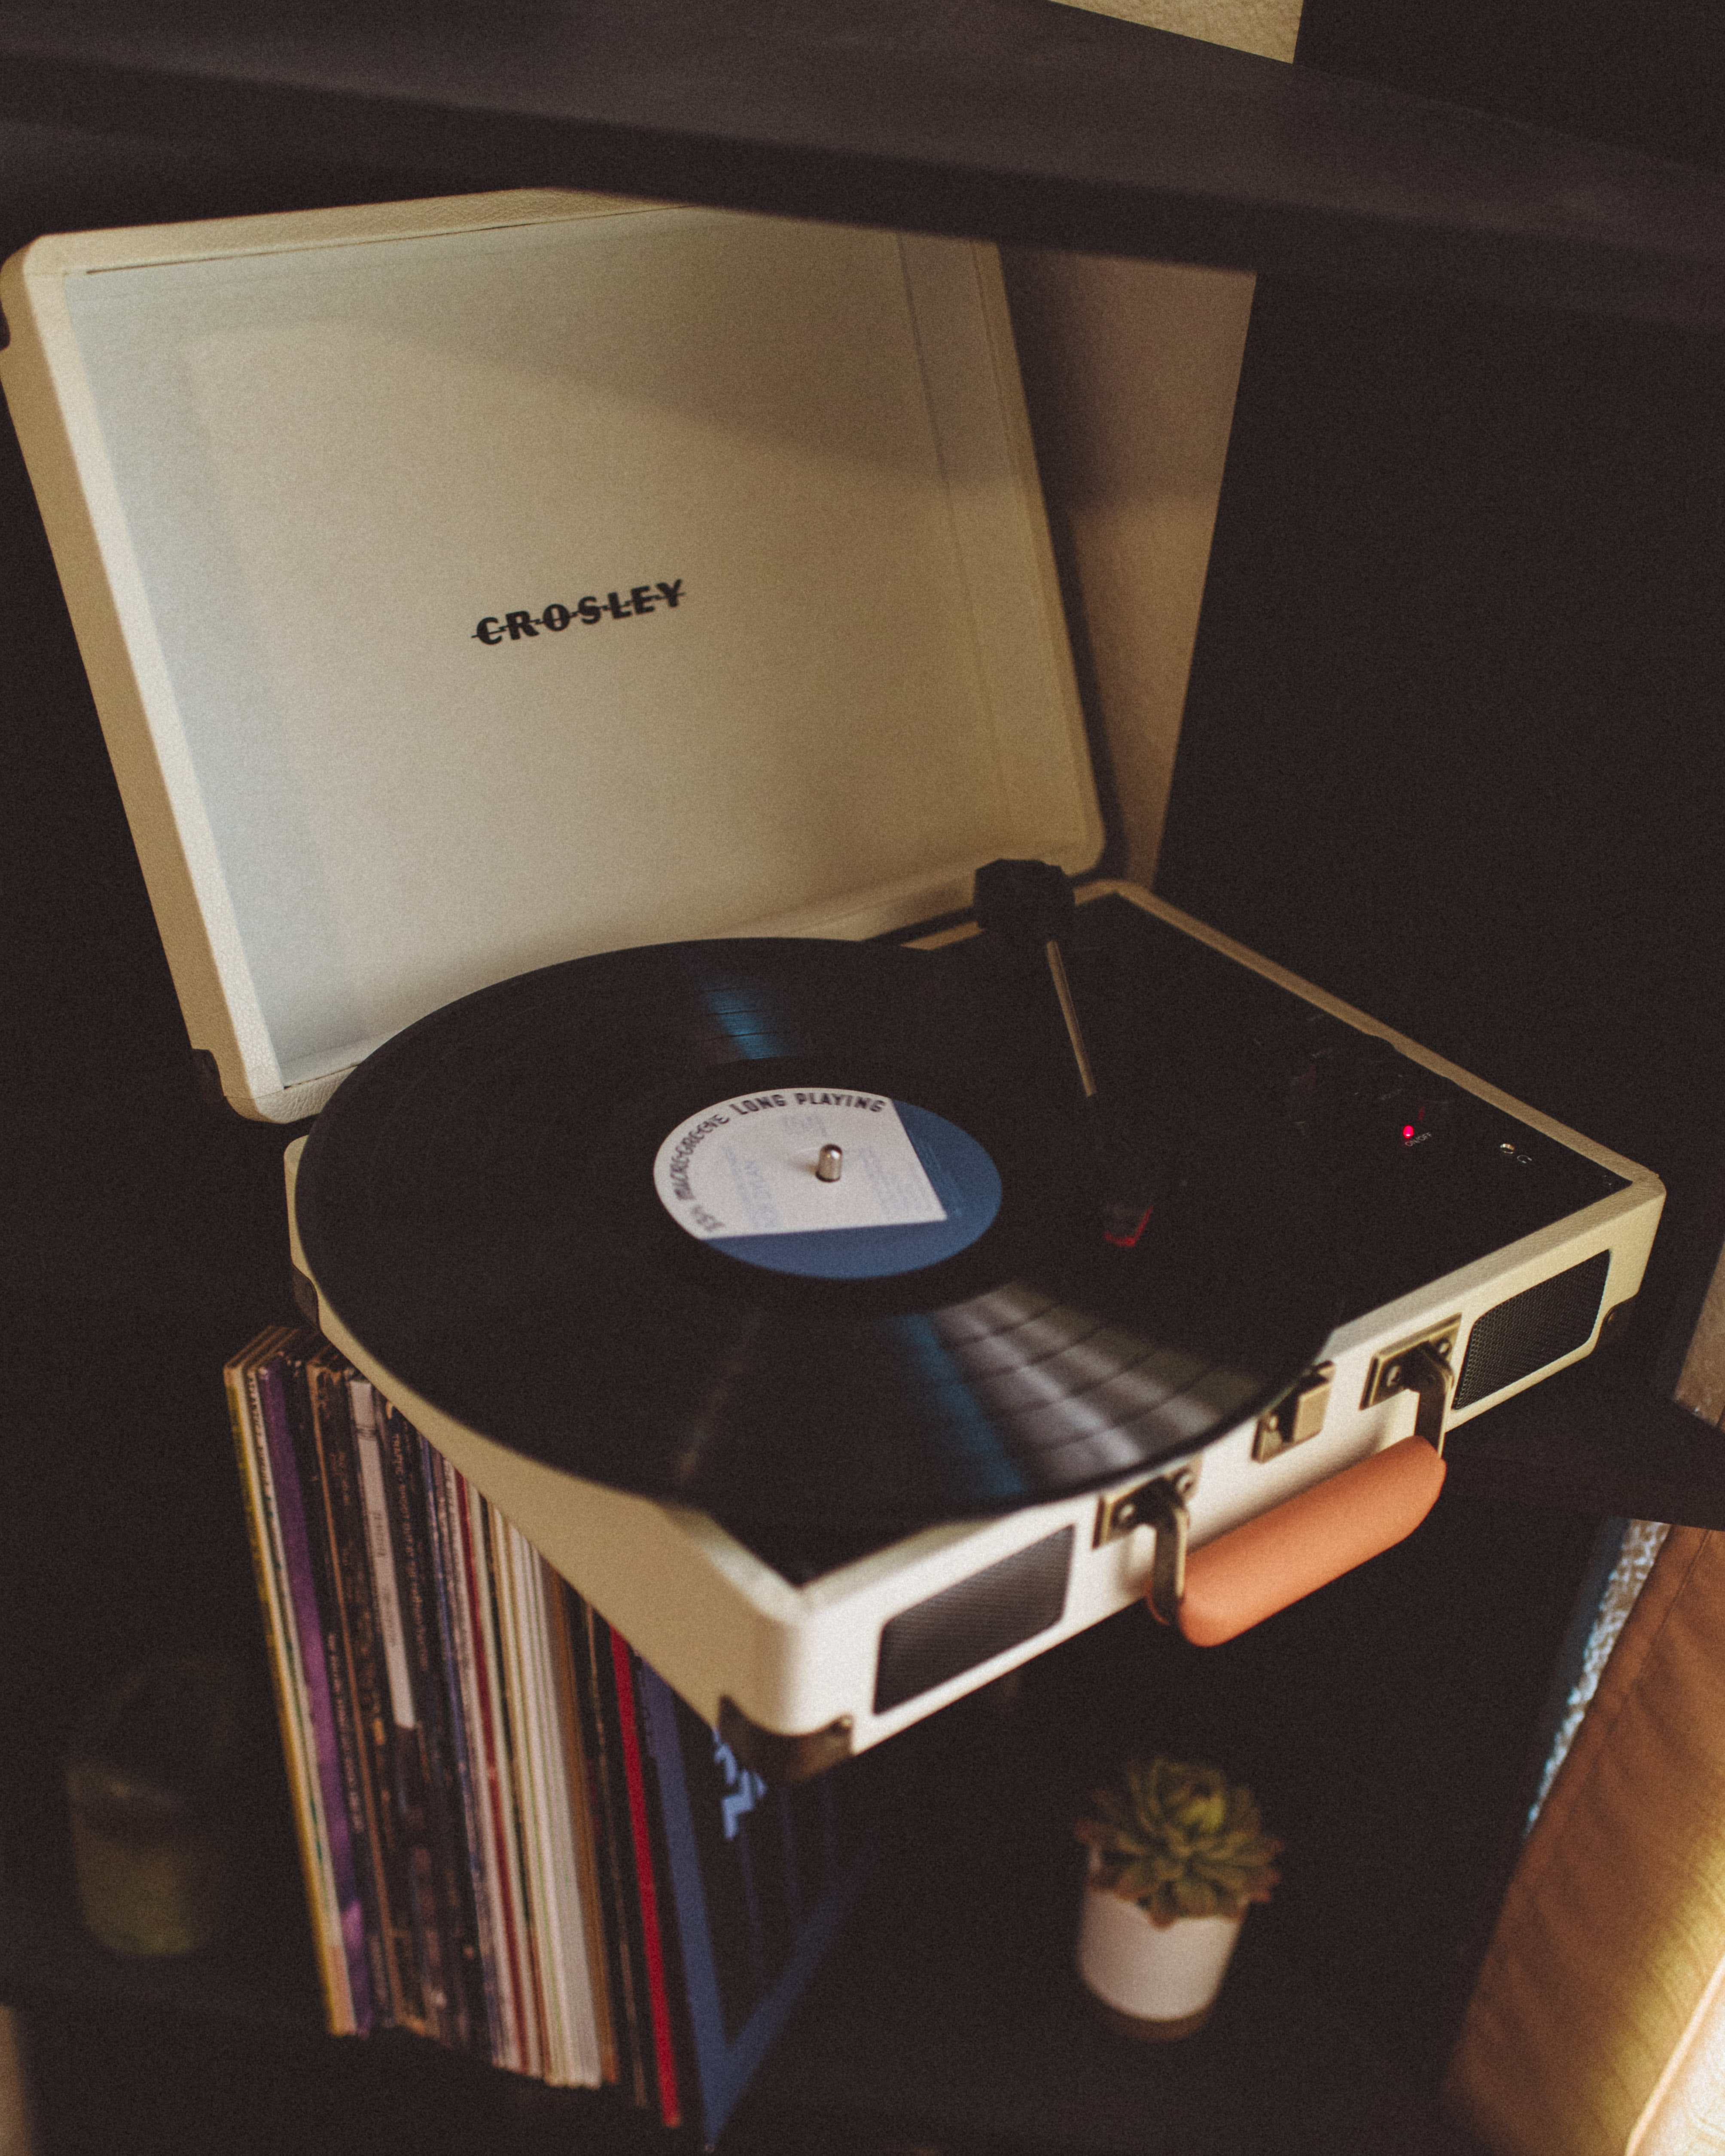 Free images: music, turntable, vintage, retro, old, record player.